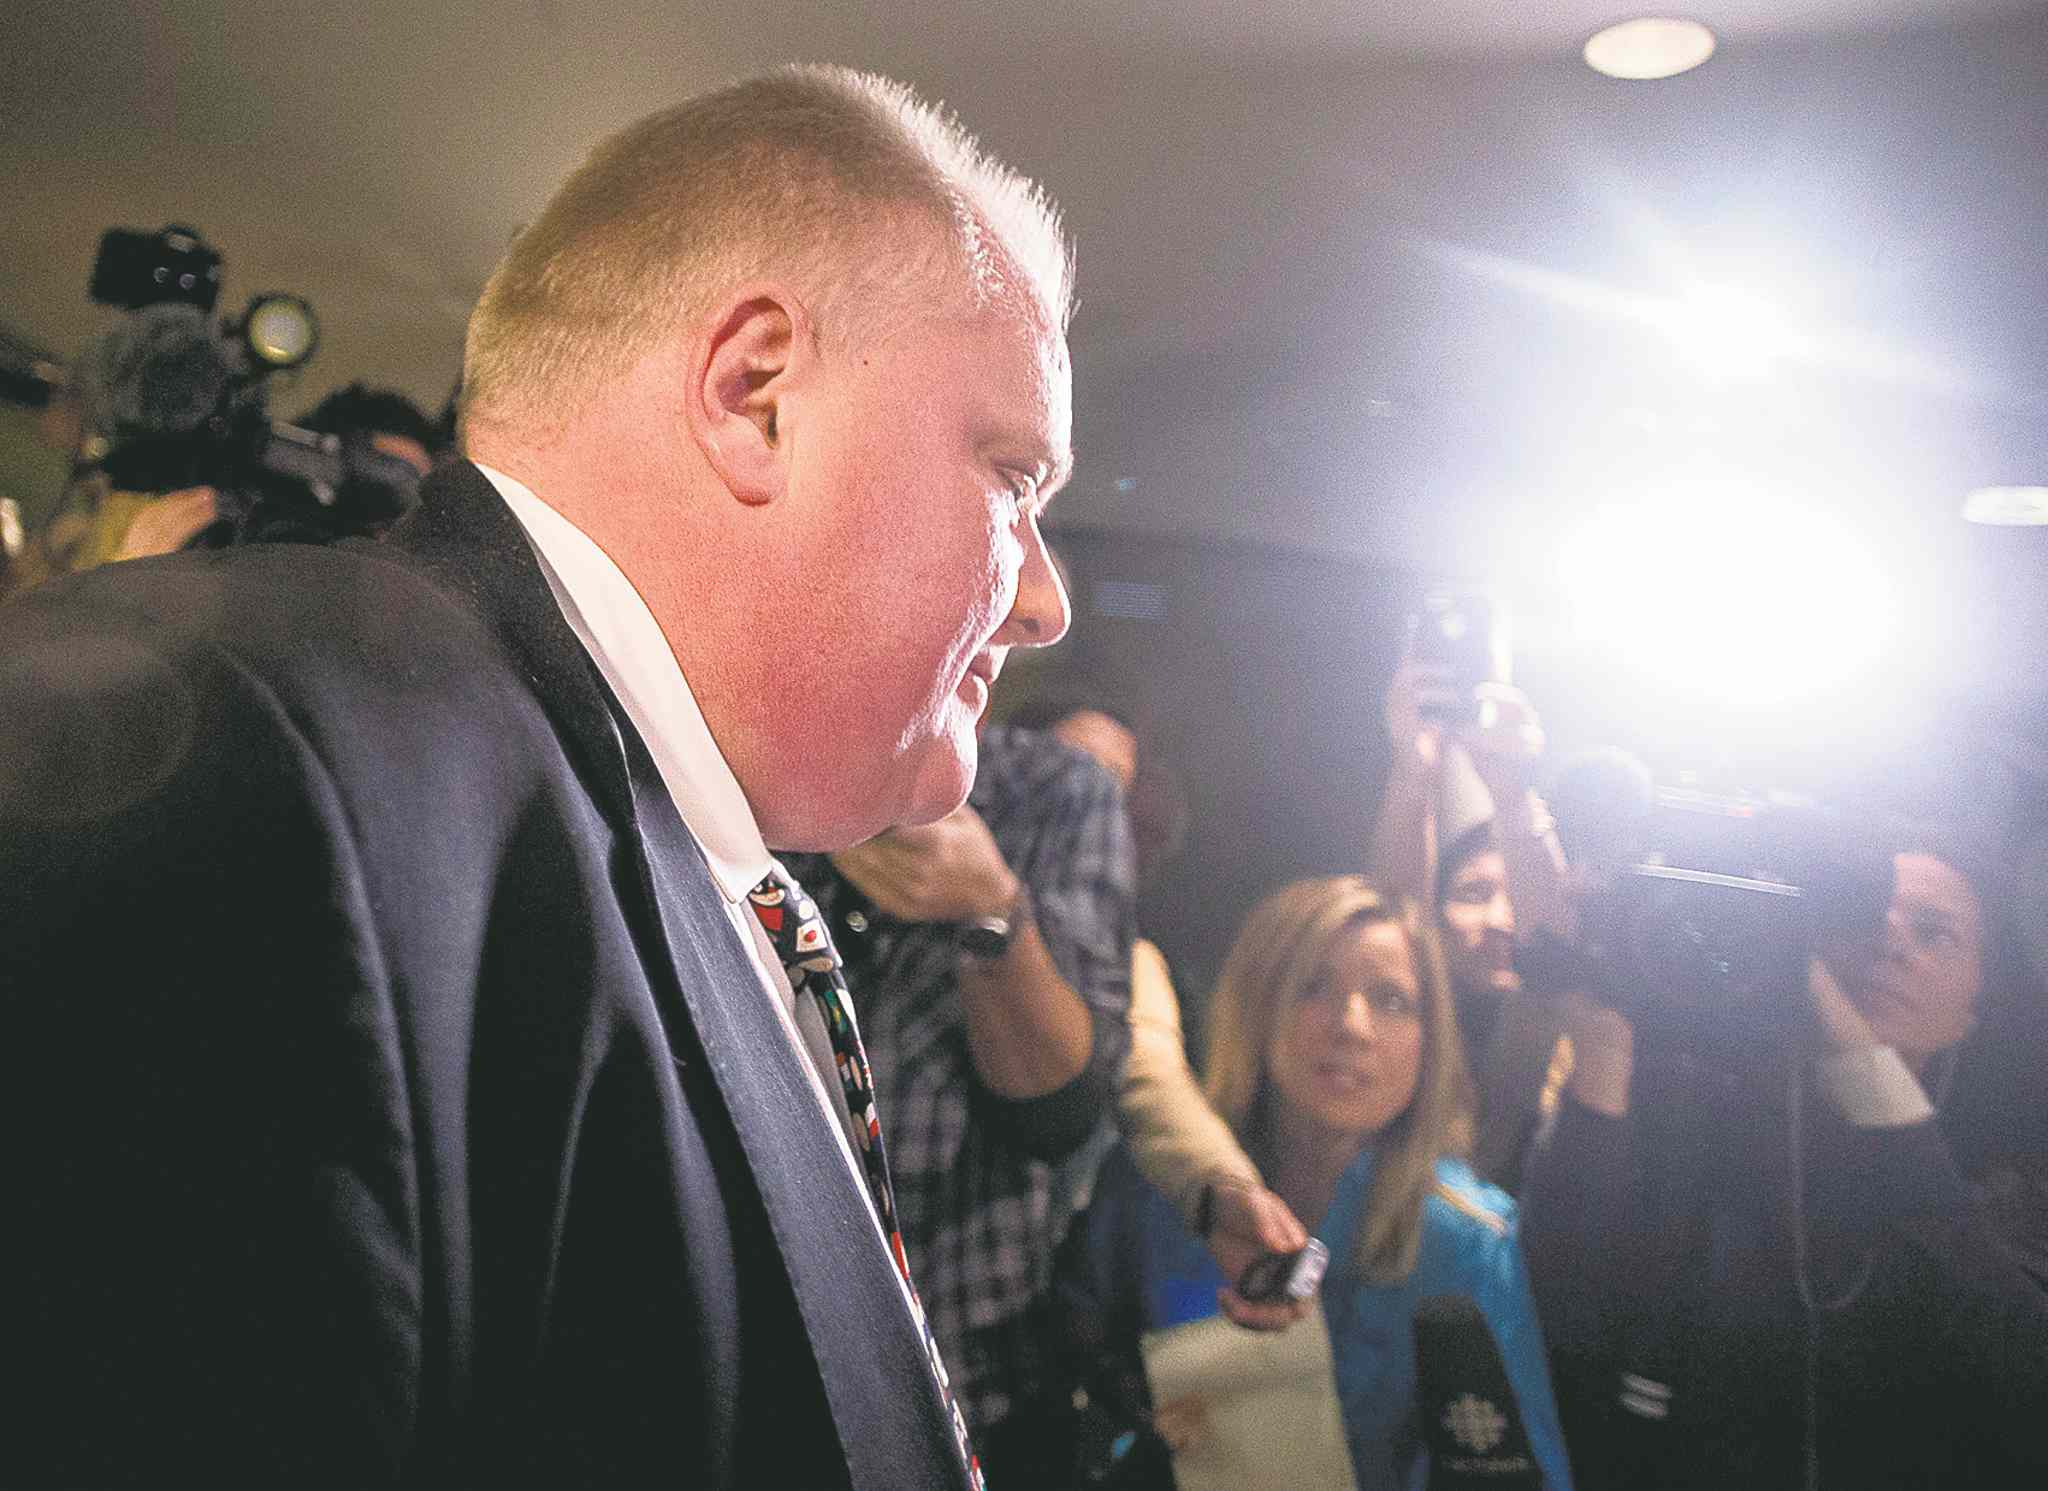 Mayor Rob Ford told a Toronto TV station he has had a 'come to Jesus moment' and hasn't had alcohol in three weeks or done drugs recently.